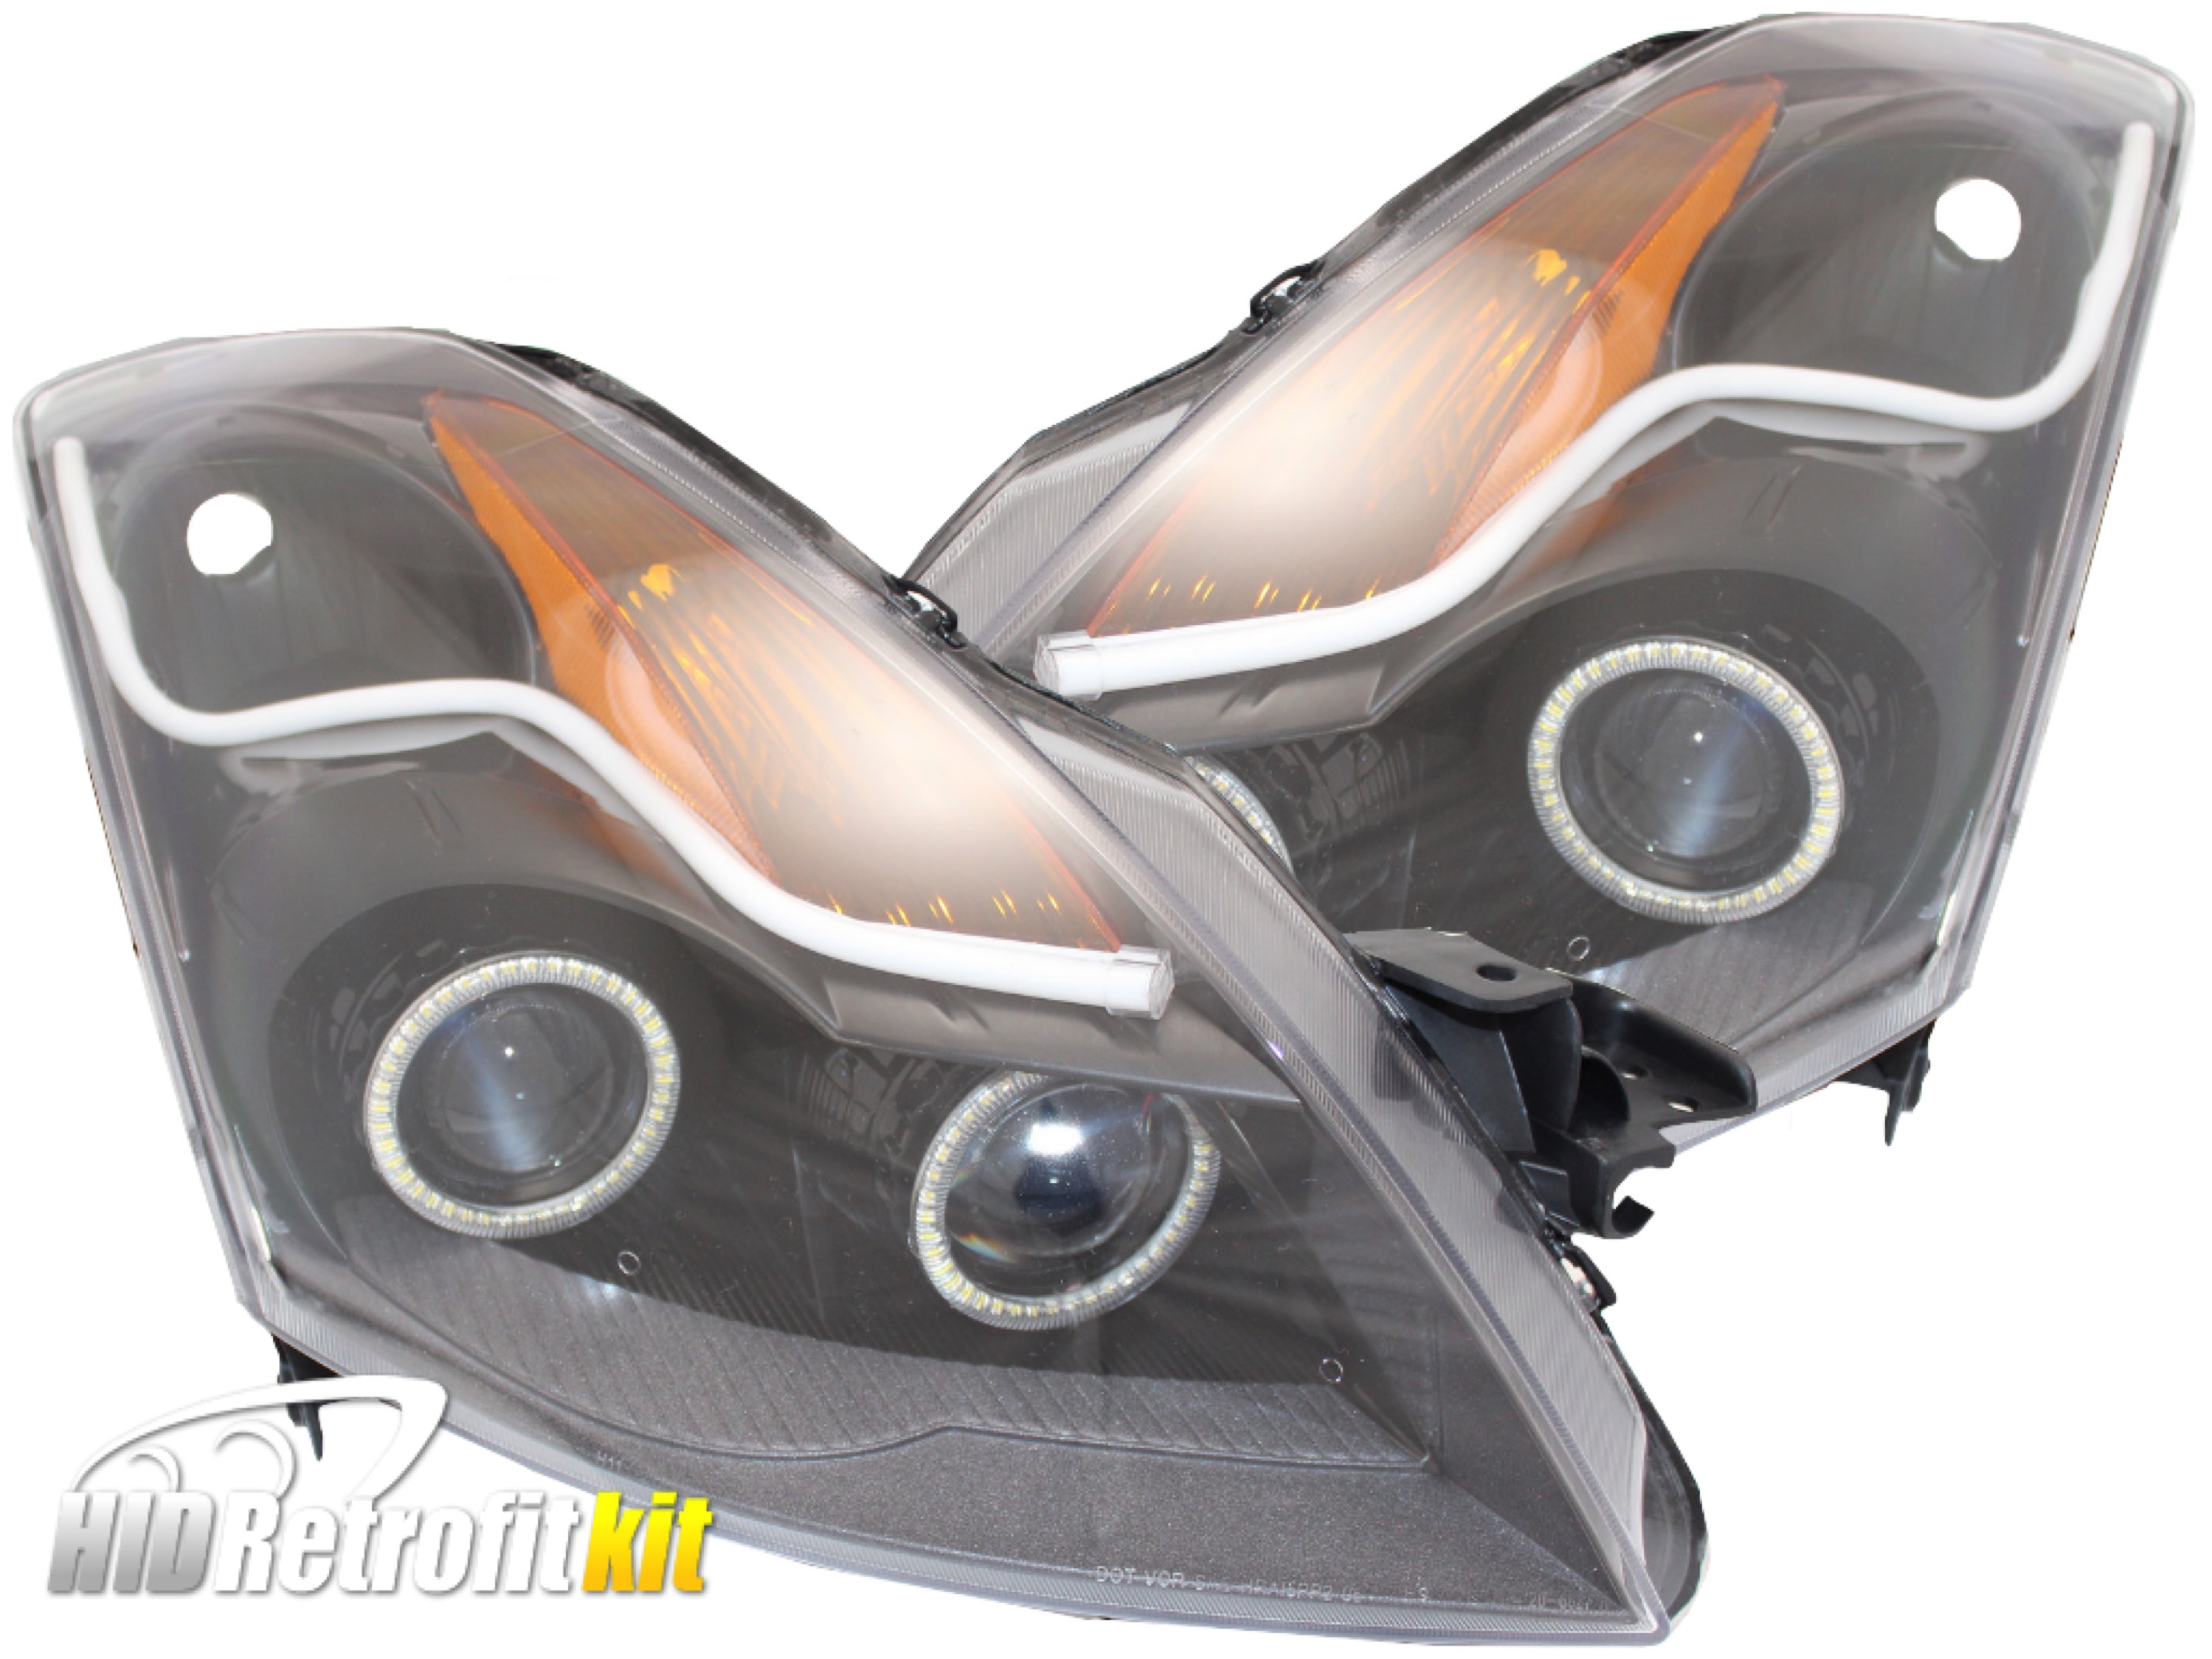 2007 2009 nissan altima sedan hid bi xenon projector headlights 2007 2009 nissan altima sedan hid bi xenon projector headlights with zorro led strips vanachro Image collections